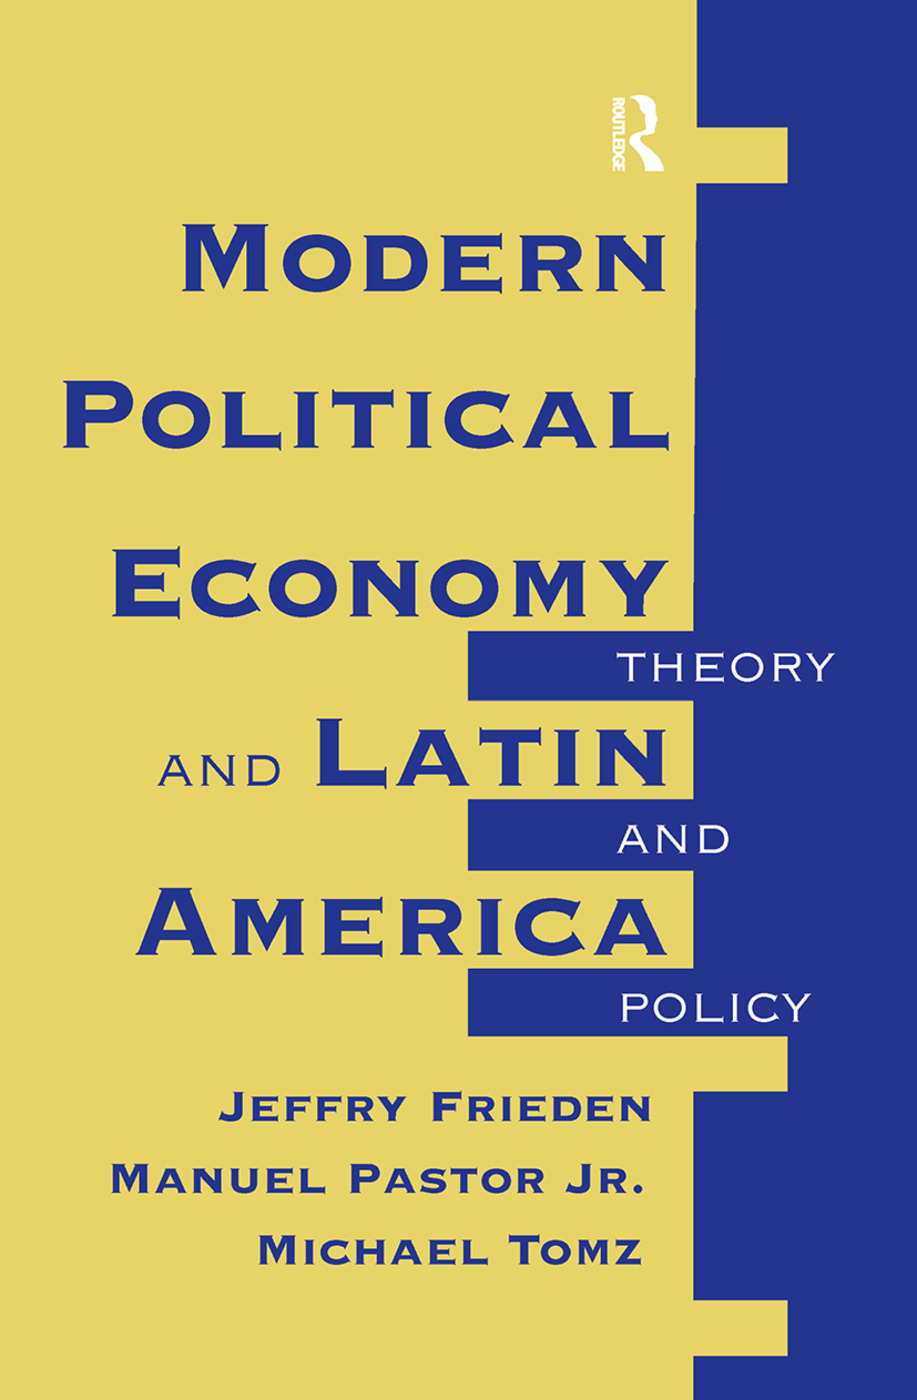 Modern Political Economy And Latin America: Theory And Policy book cover